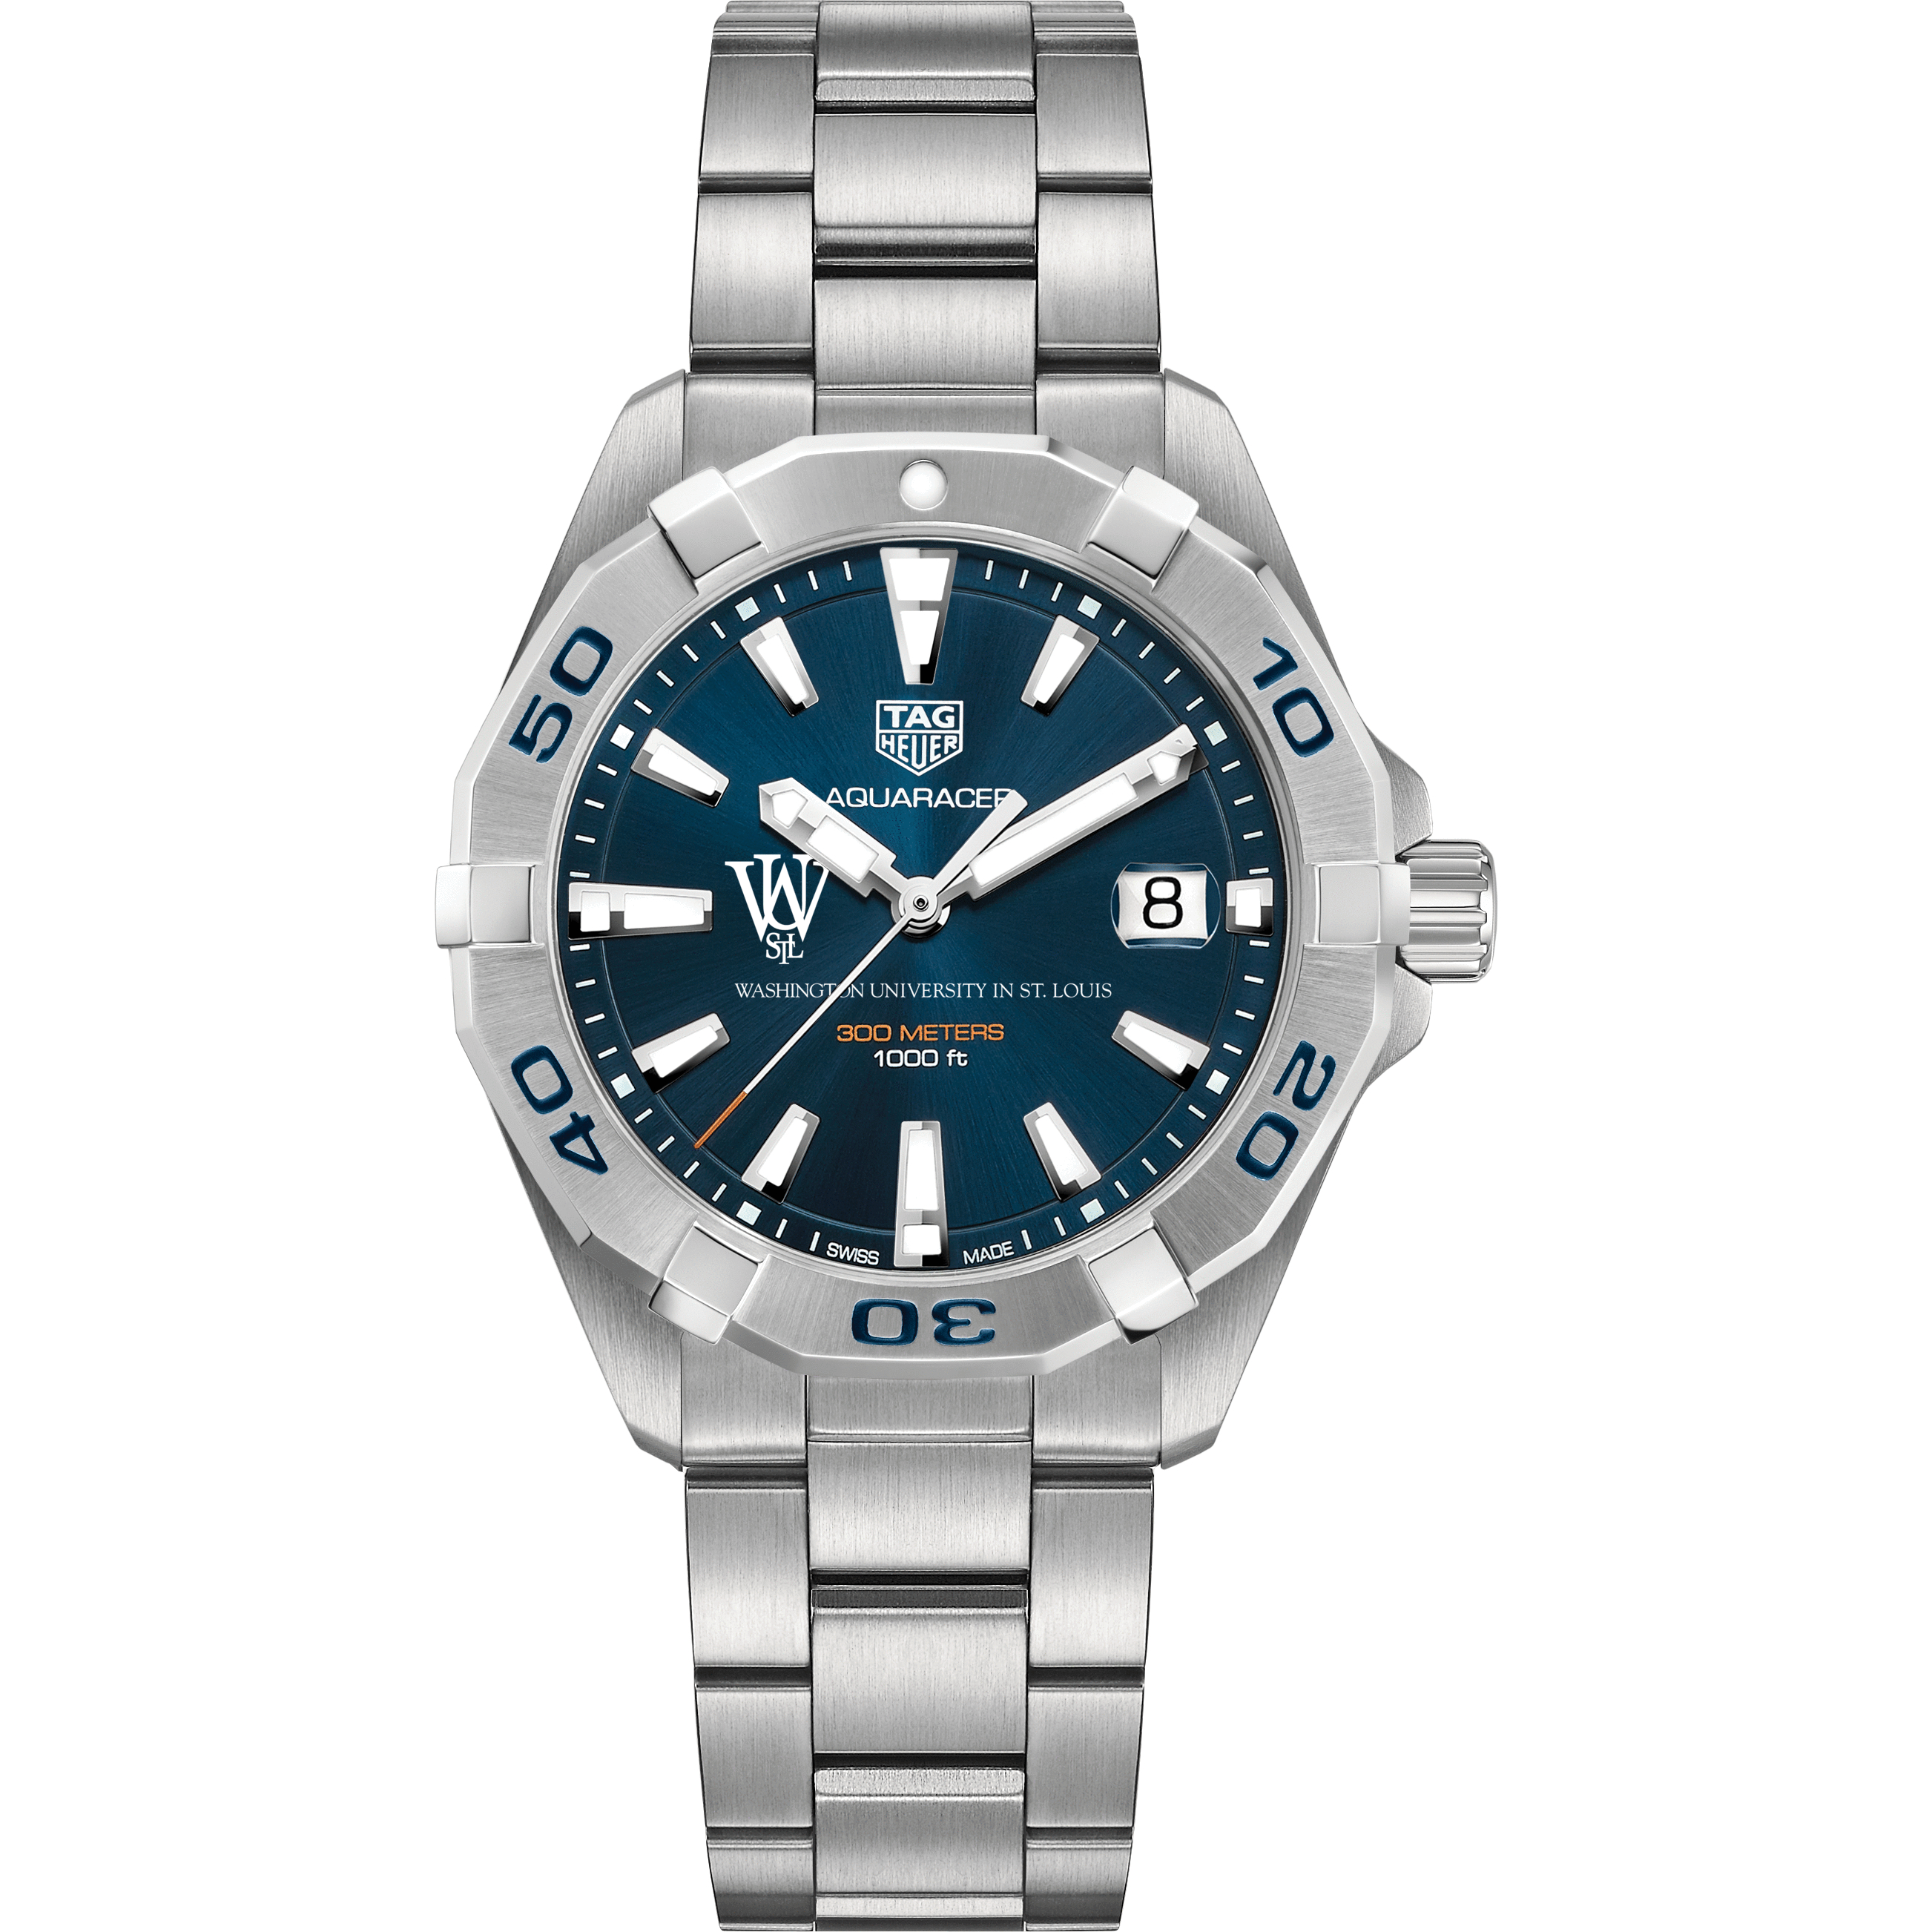 WUSTL Men's TAG Heuer Steel Aquaracer with Blue Dial - Image 2